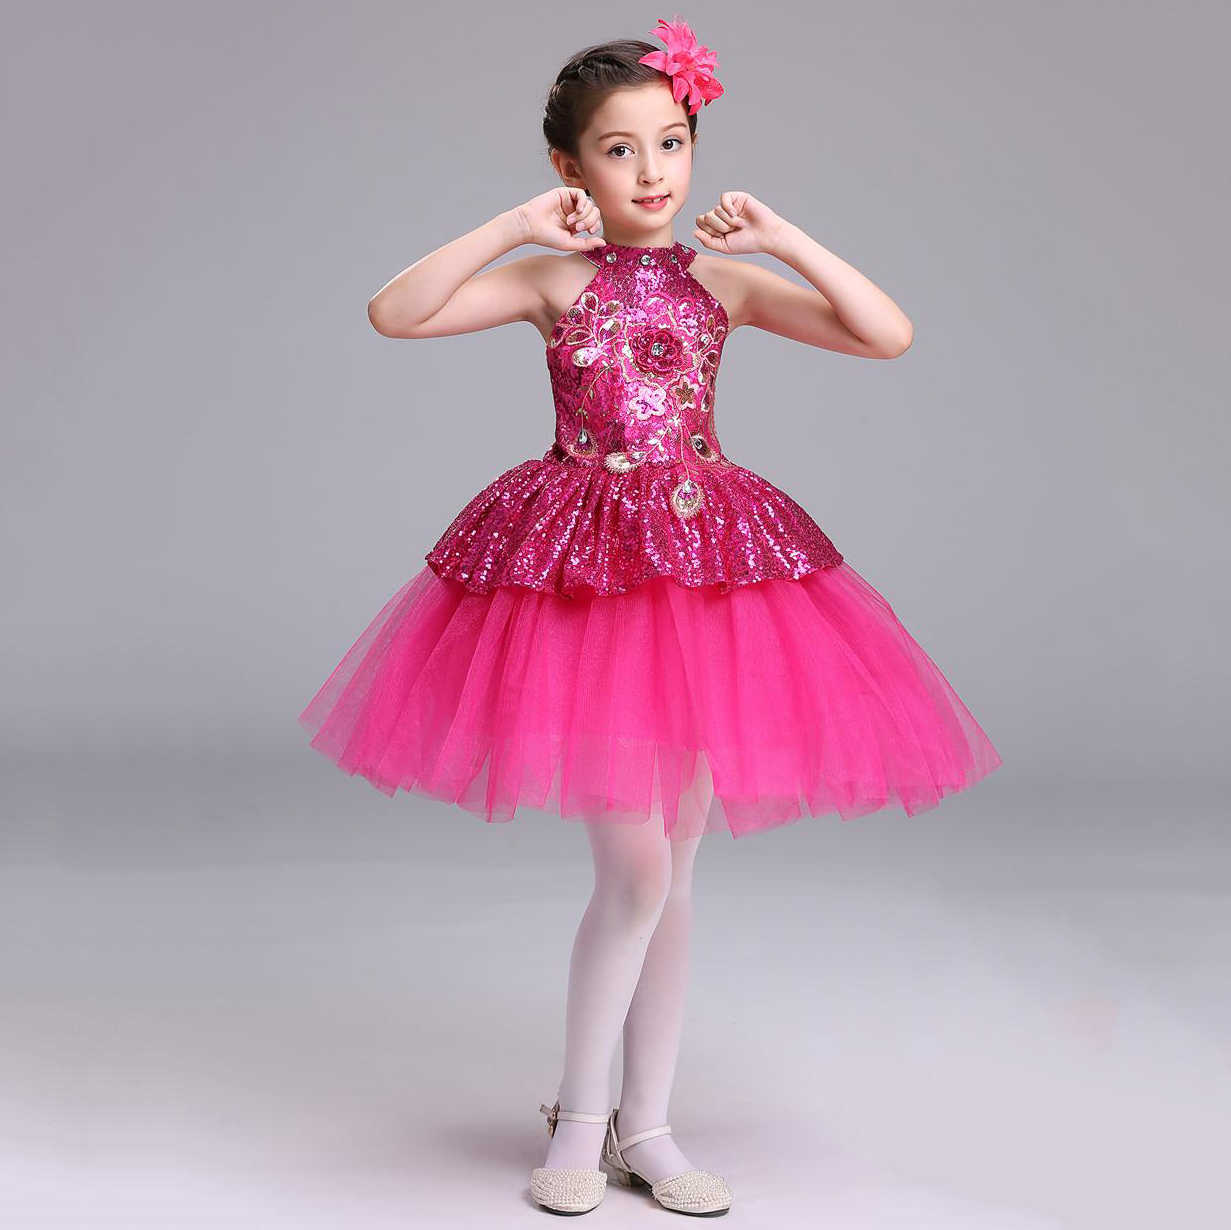 275c8f05e6b5 Detail Feedback Questions about Tulle flowers girls princess pink ...